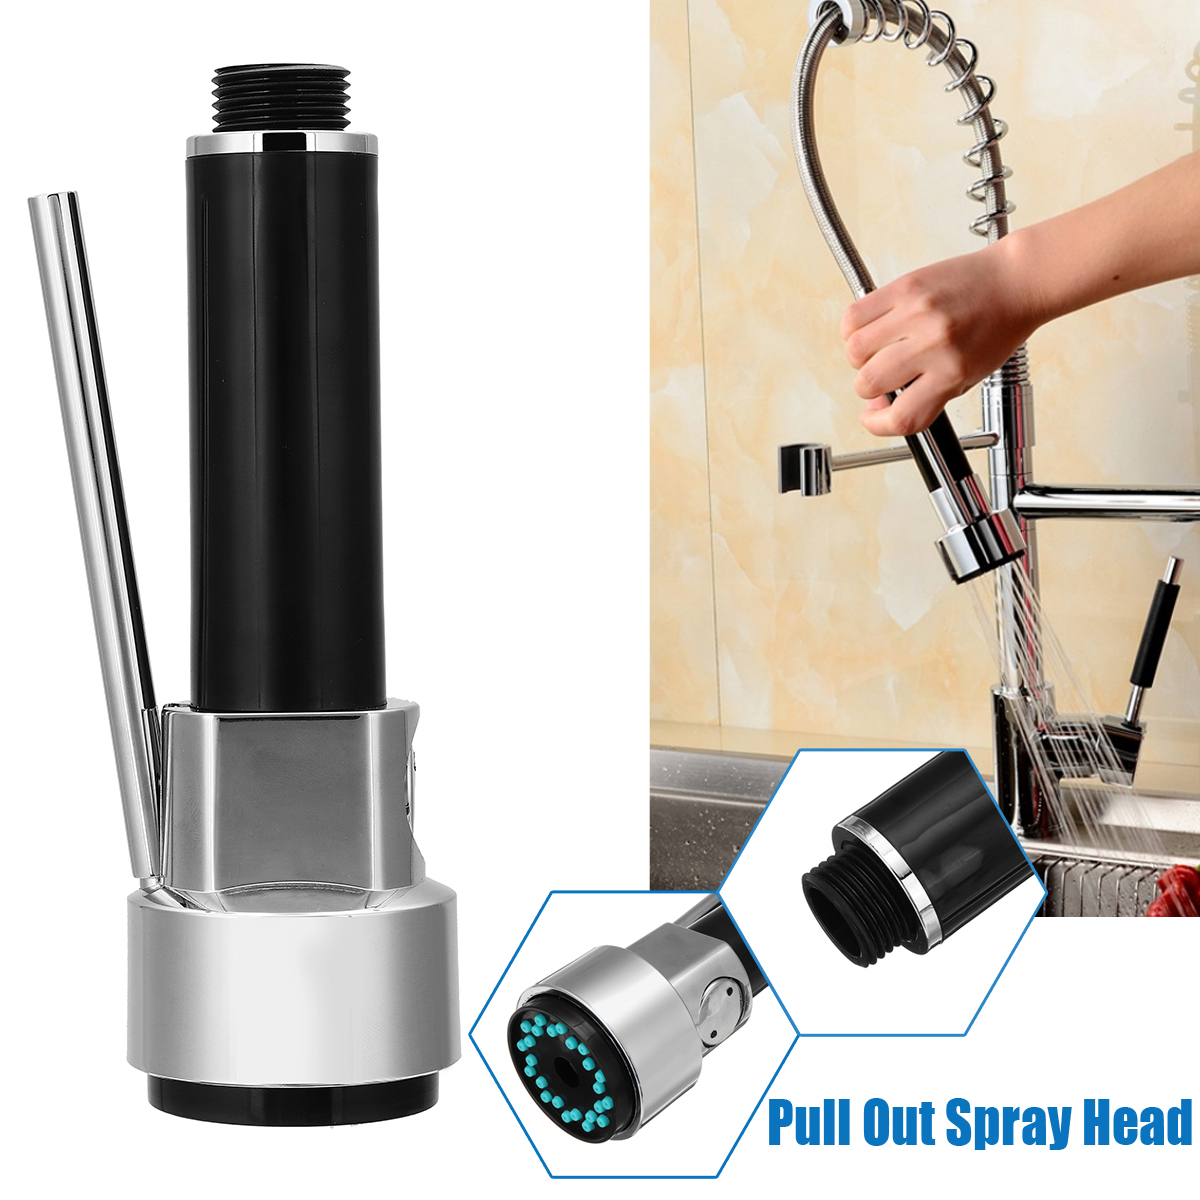 Kitchen Bathroom Tap Faucet Mixer Pull Out Spray Head Outlet Sprayer Nozzle Water Saving Kitchen Faucet Tap Replacement Part